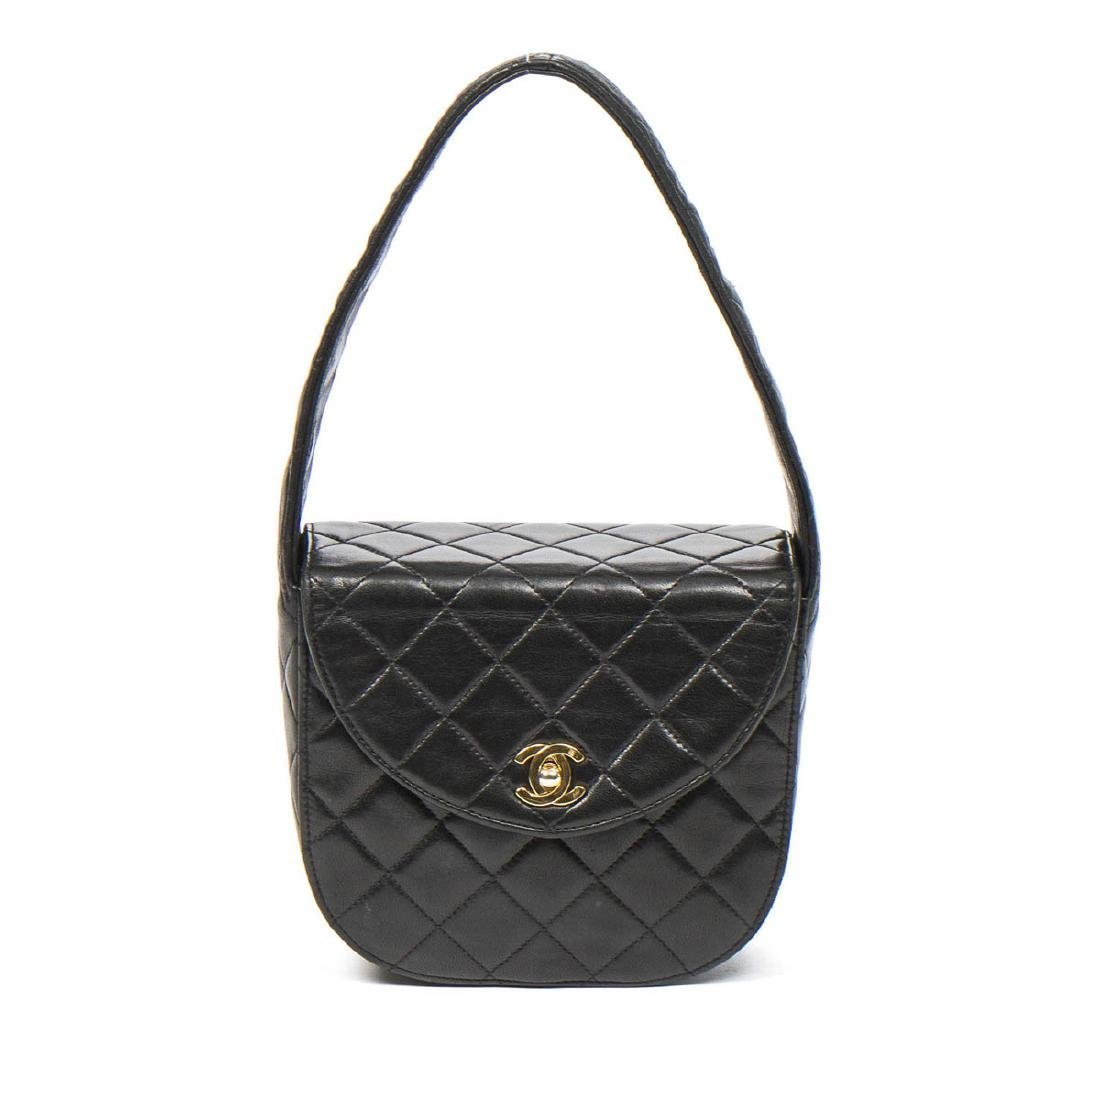 Chanel Make up Hand Bag in Black Quilted Leather